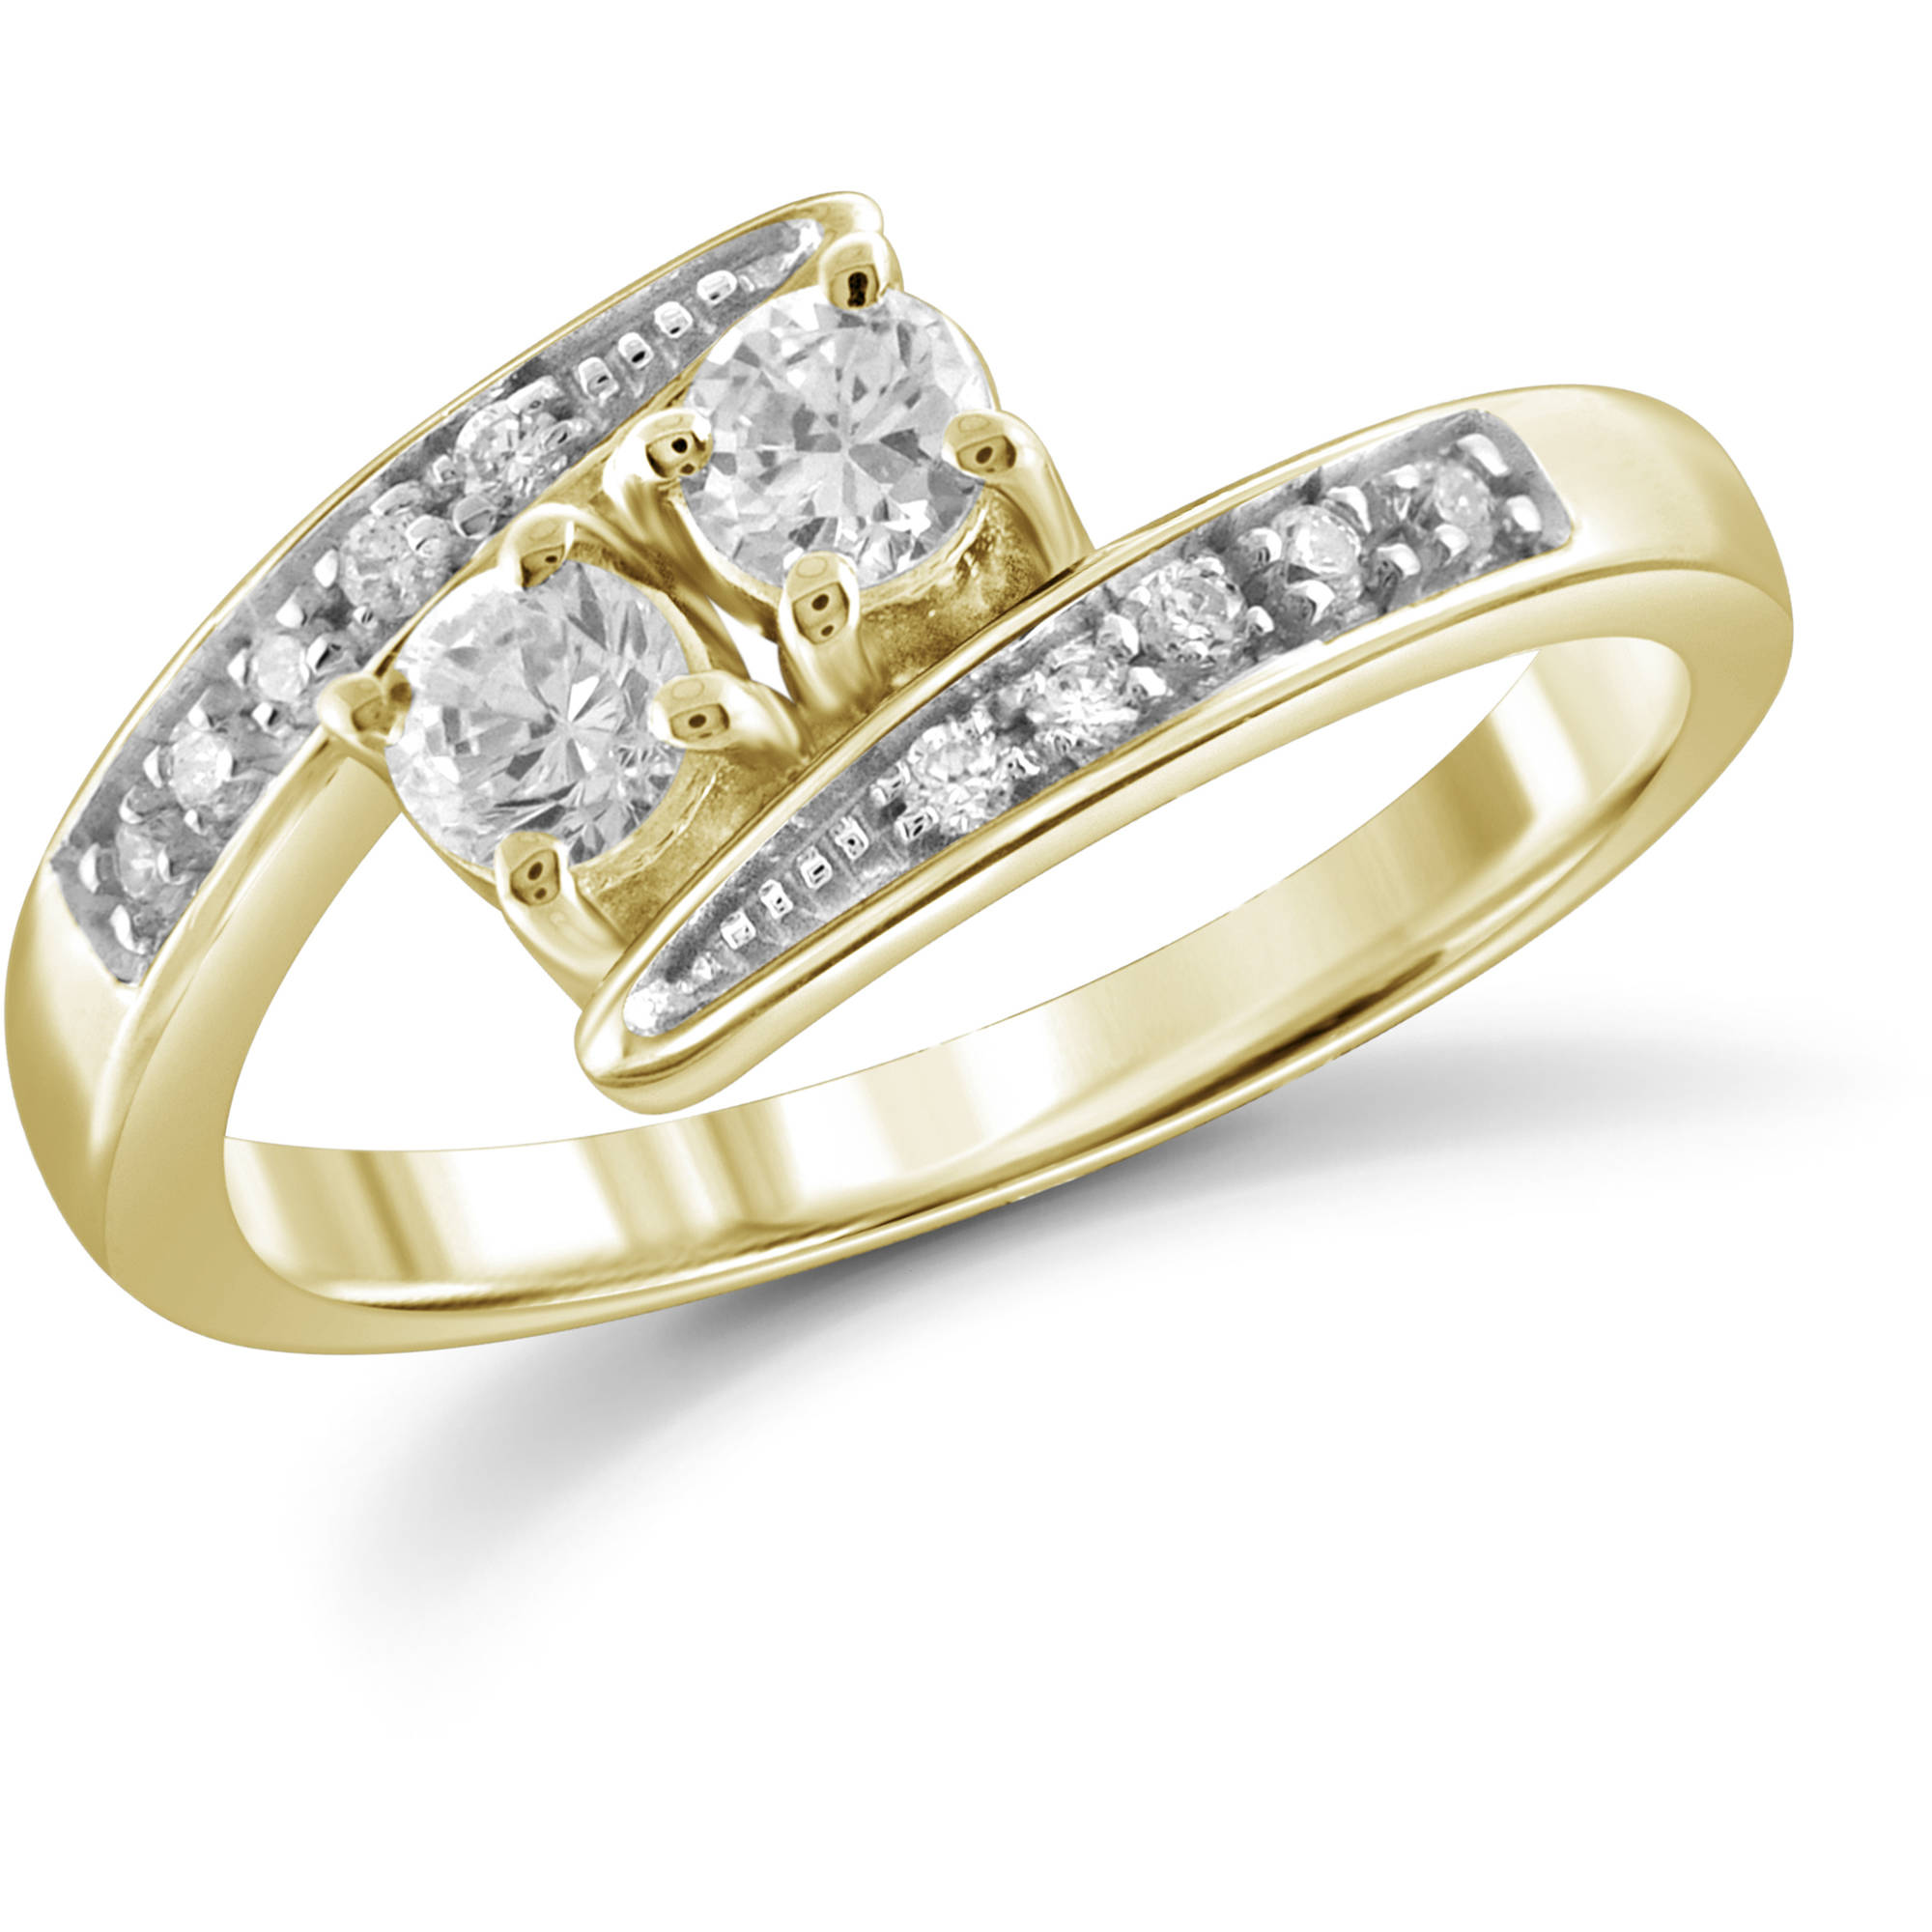 JewelersClub 1 2 Carat TW White Diamond 14Kt Yellow Gold Two-Stone Engagement Ring by JewelersClub